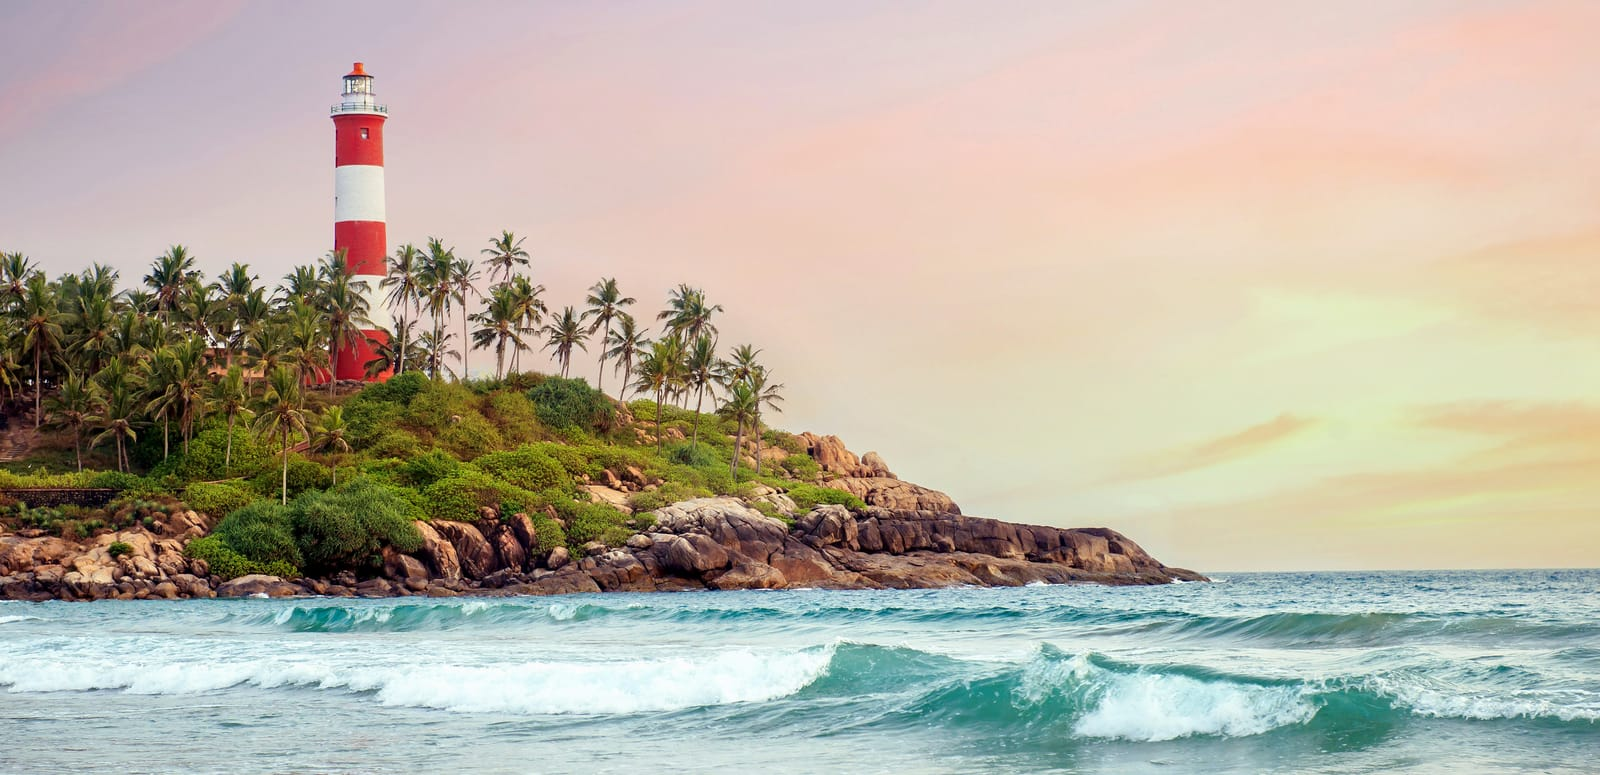 50 Best Places to Visit in Kerala - 2019 (Photos & Reviews)